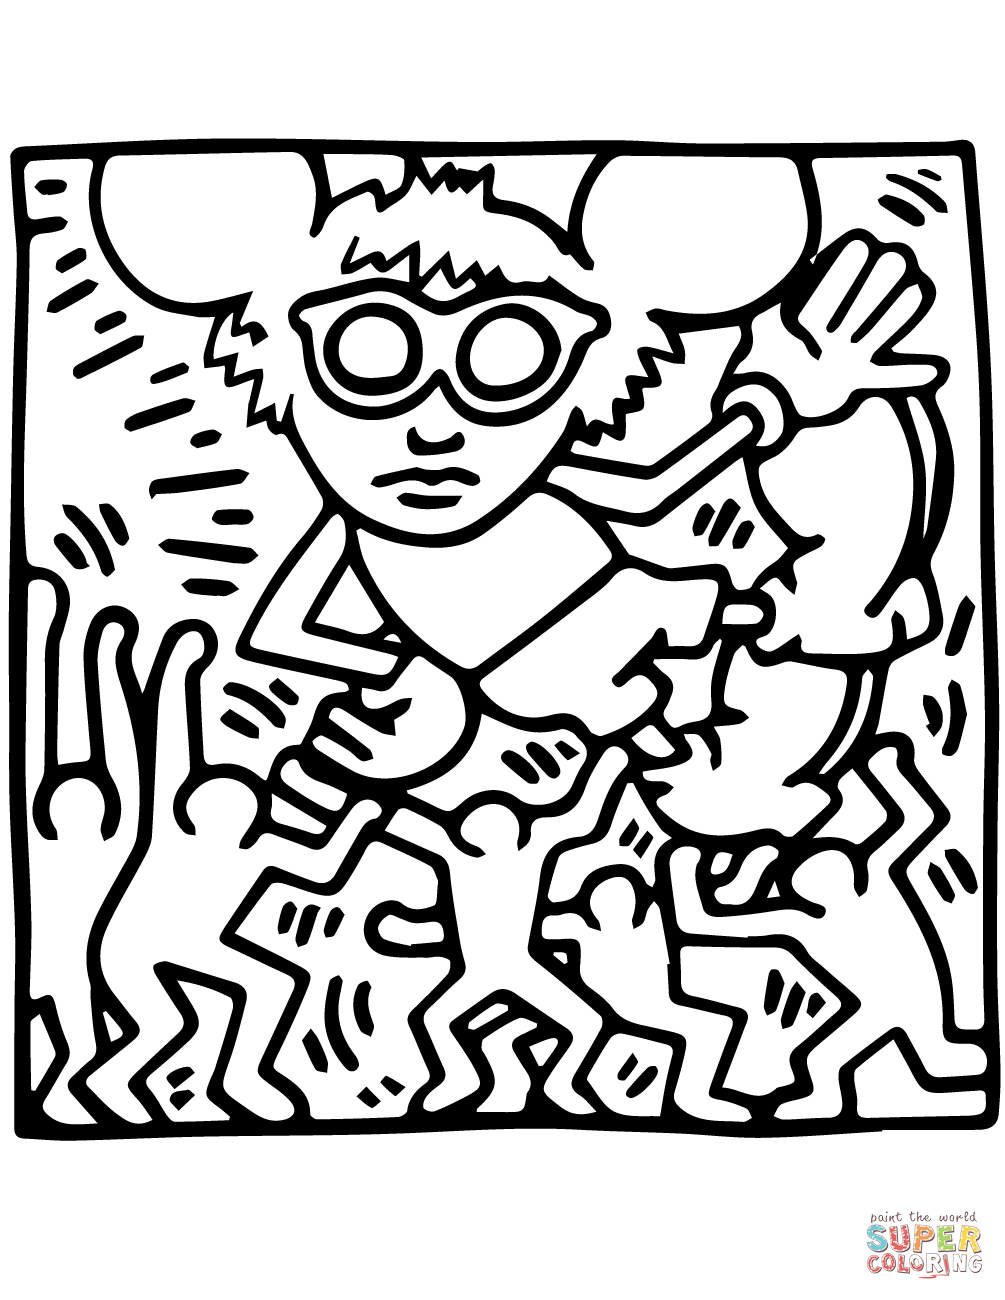 Keith Haring Coloring Pages | Free Coloring Pages | Haring ...